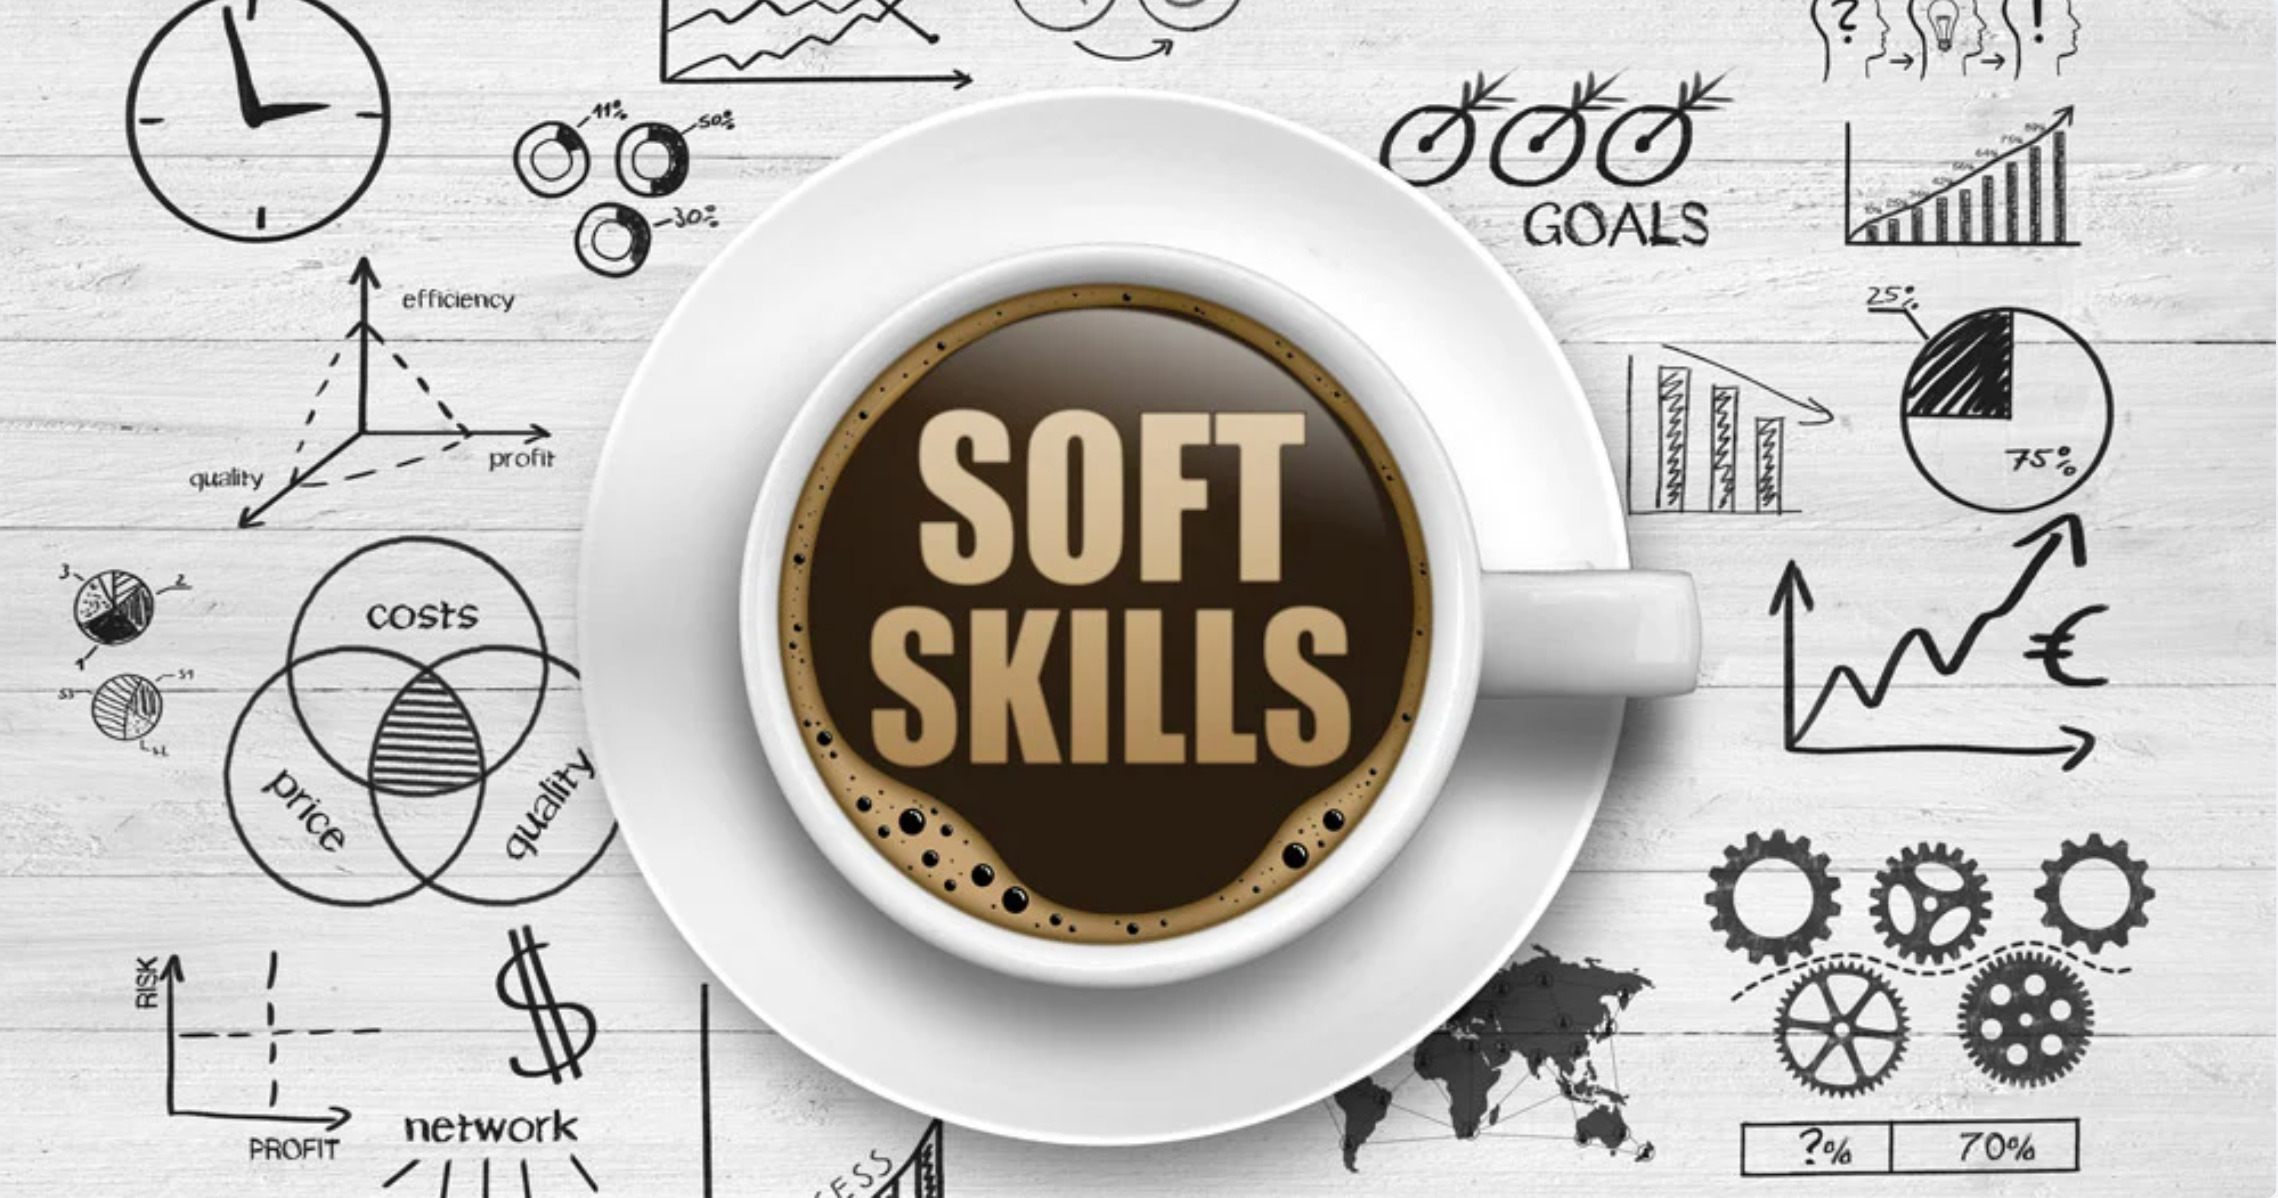 Why are soft skills so important today?